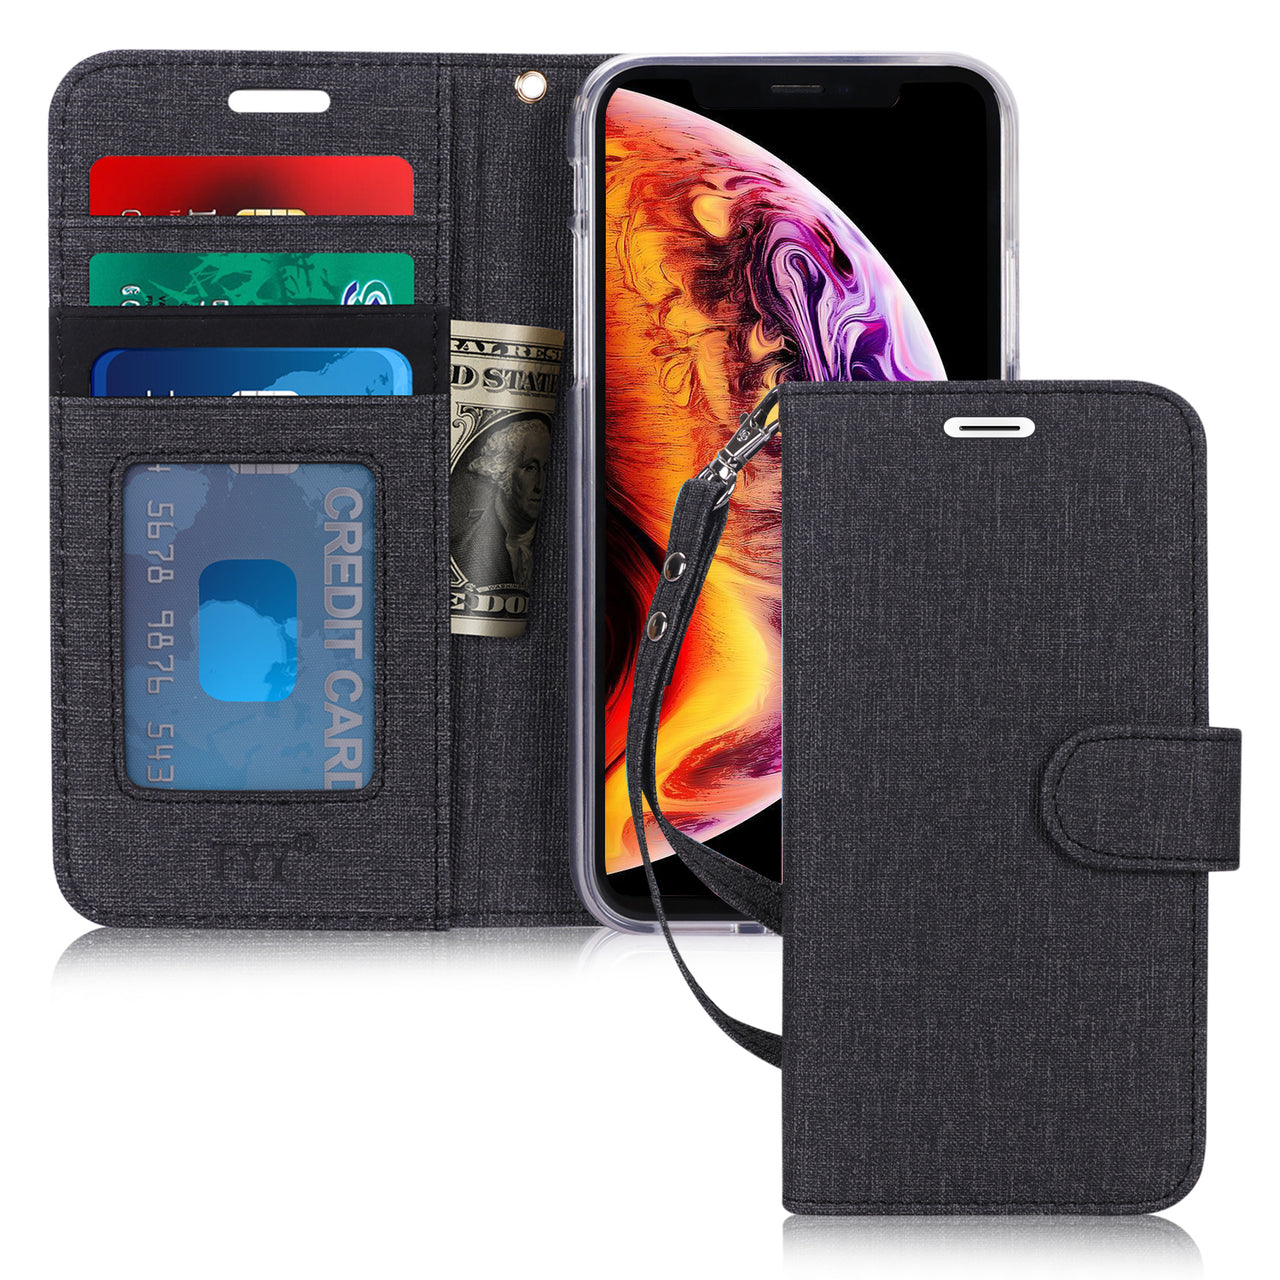 "1st FYY Case for iPhone Xr (6.1"") 2018, [Kickstand Feature] Flip Folio Canvas Wallet Case with ID and Credit Card Pockets for iPhone Xr (6.1"") 2018"